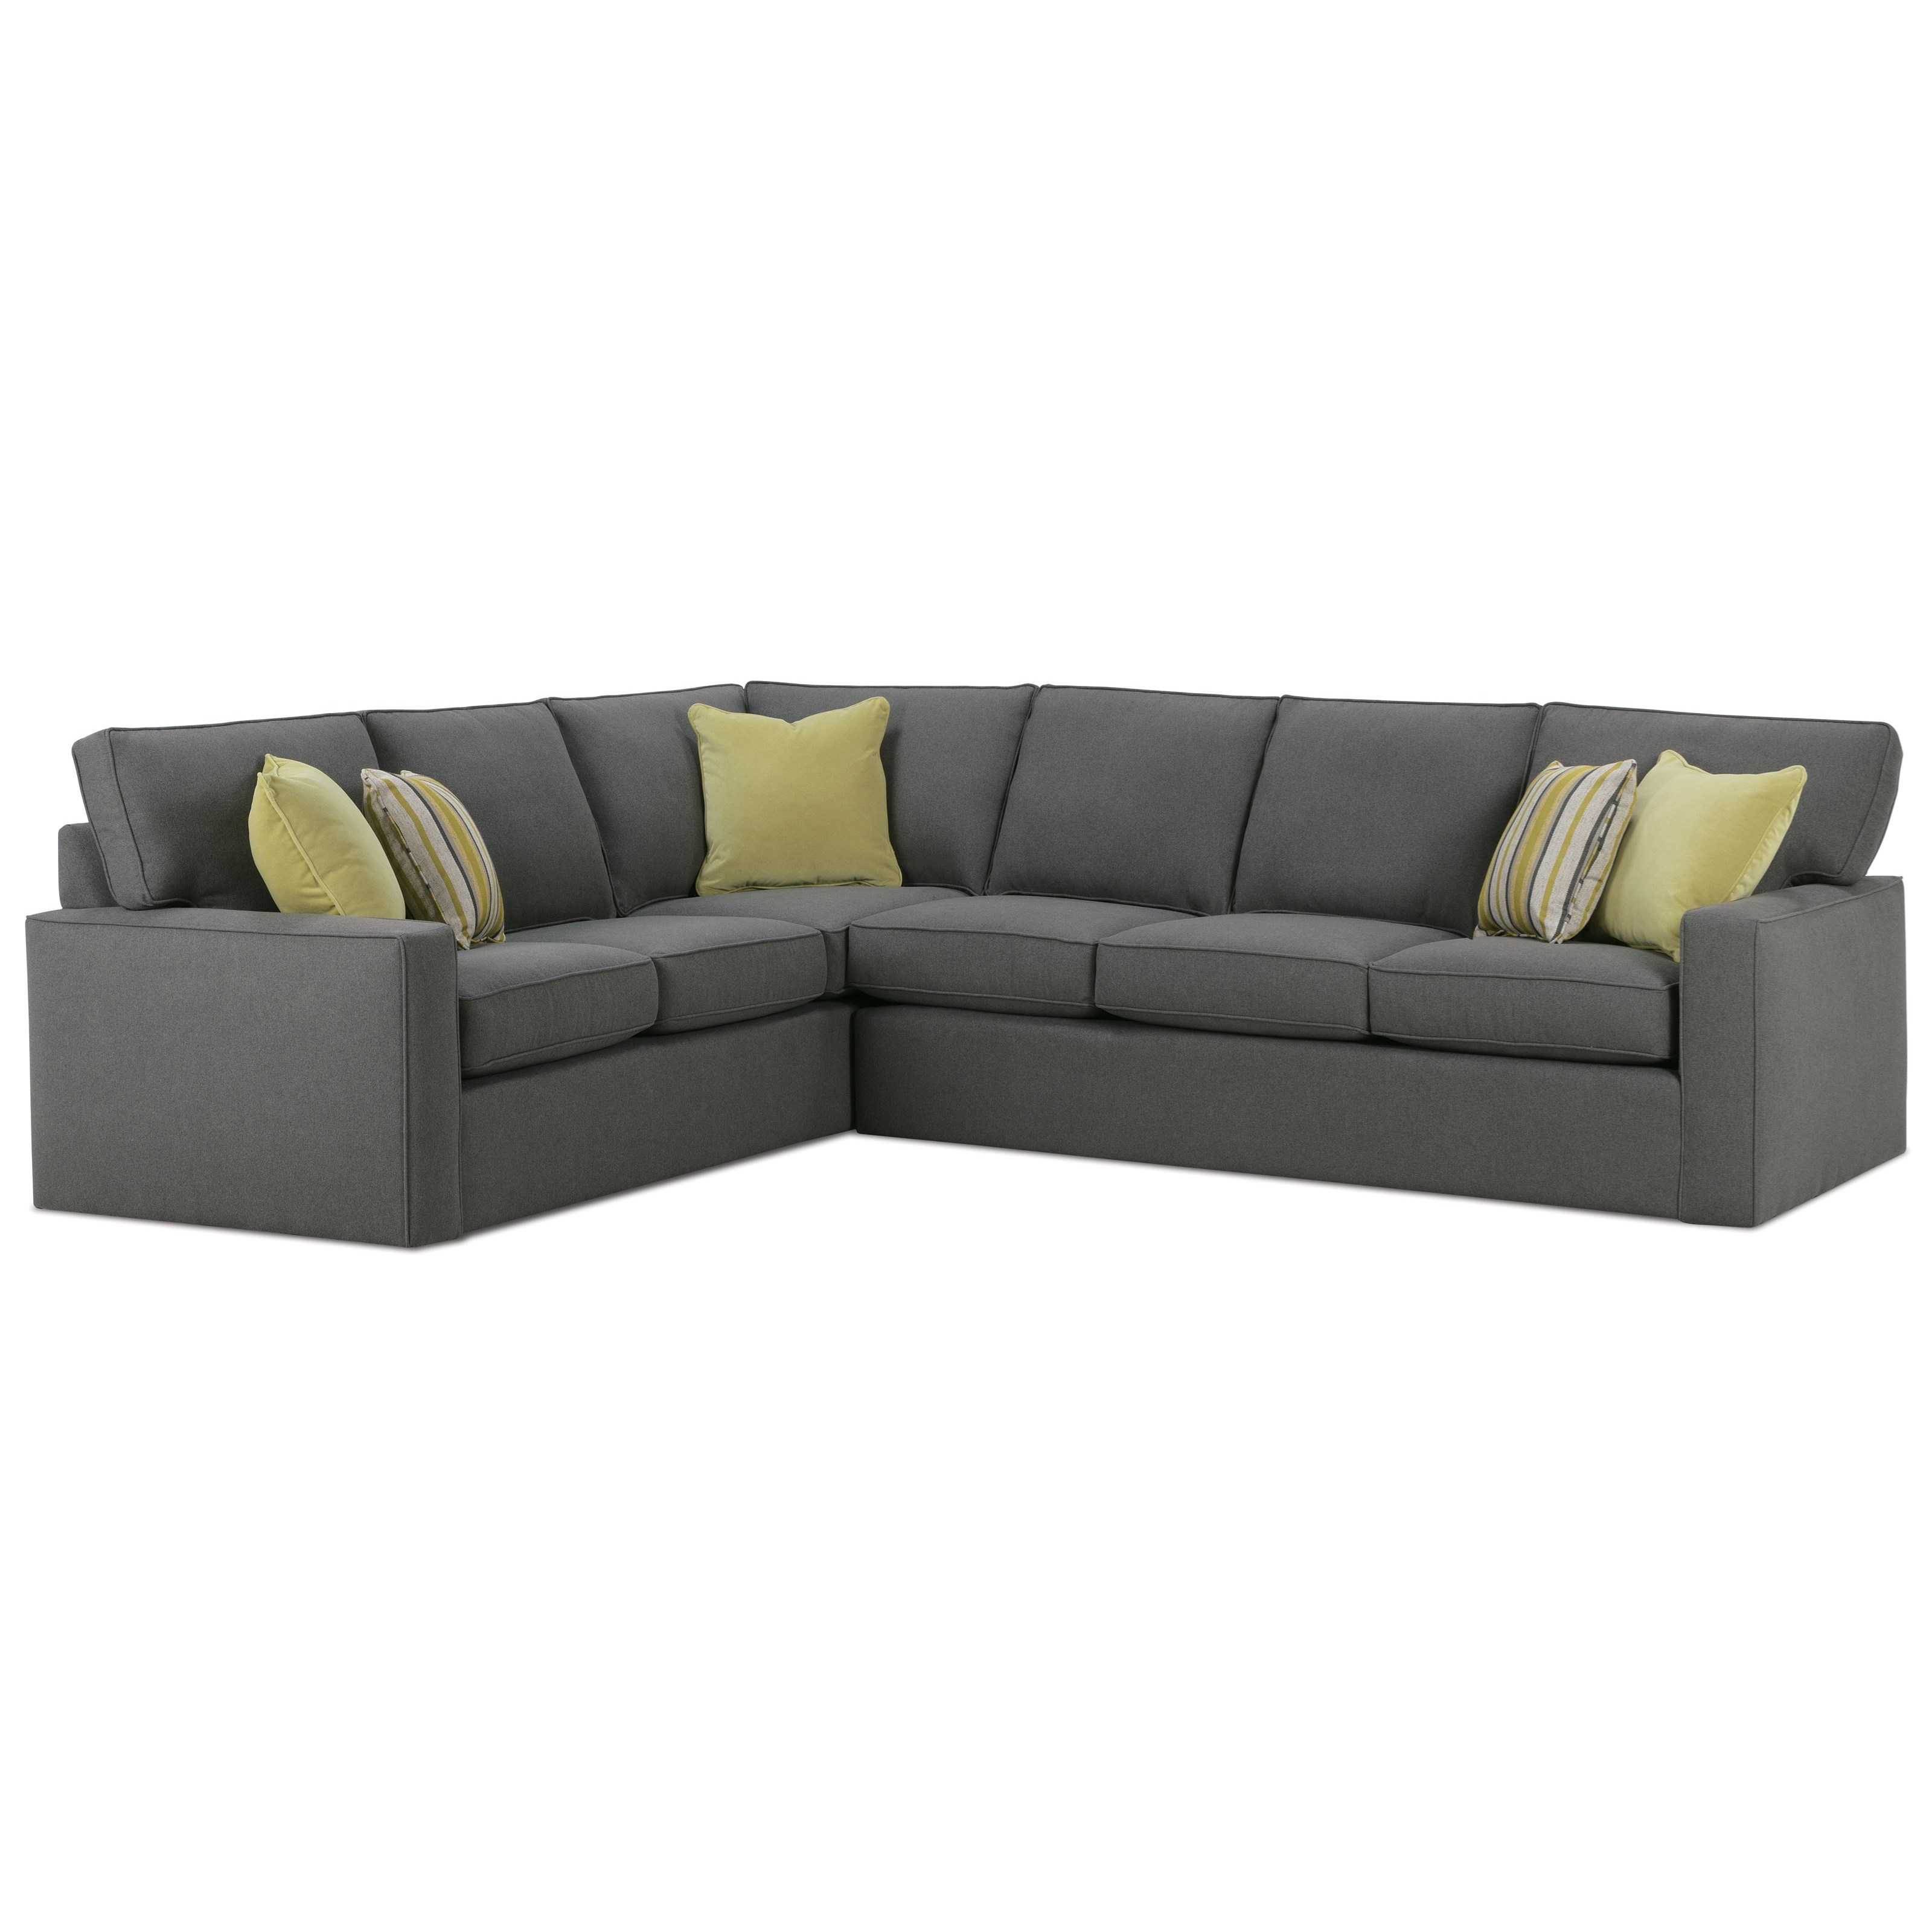 Monaco Sectional Sofa by Rowe at Wilson's Furniture